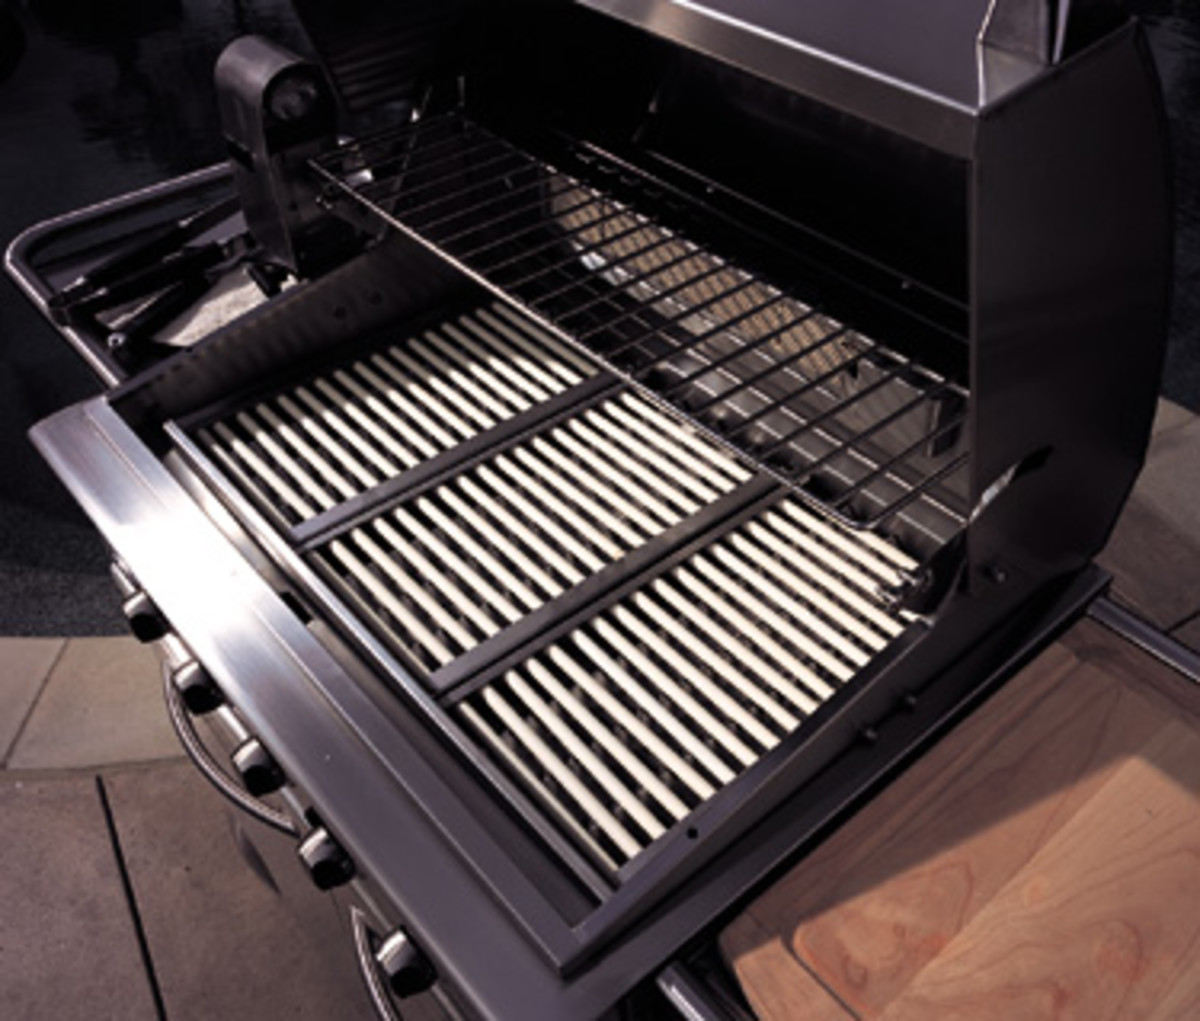 The feature that pushed DCS ahead of the competition was the use of porcelain rods locked into a stainless tray instead of briquettes or lava rocks.